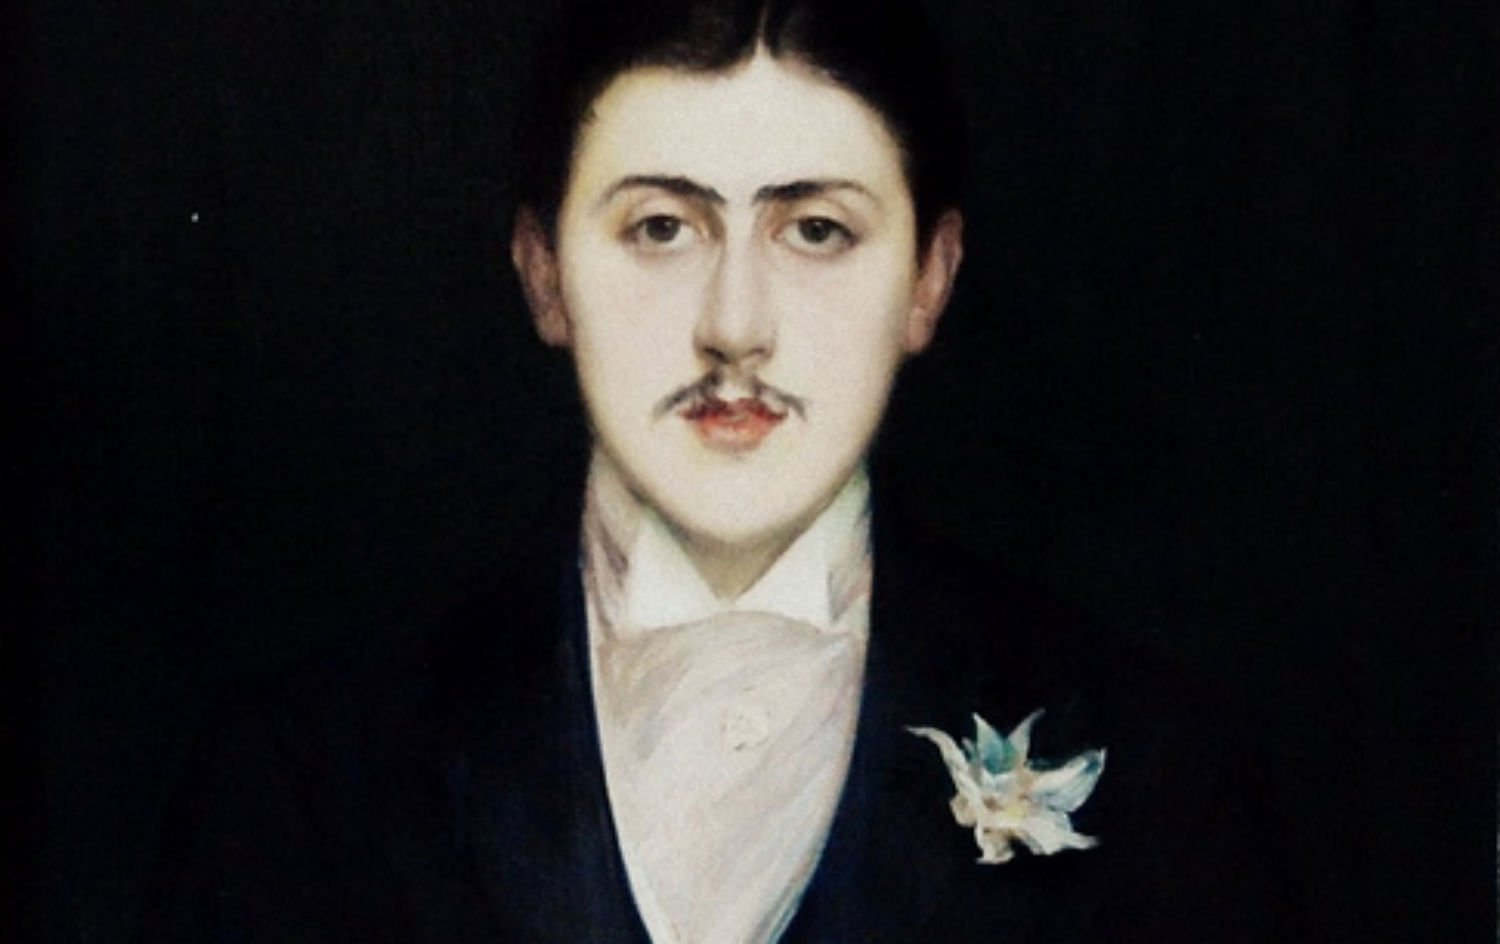 A-portrait-of-Marcel-Proust.-Licensed-through-Creative-Commons-Flickr-user-LWY